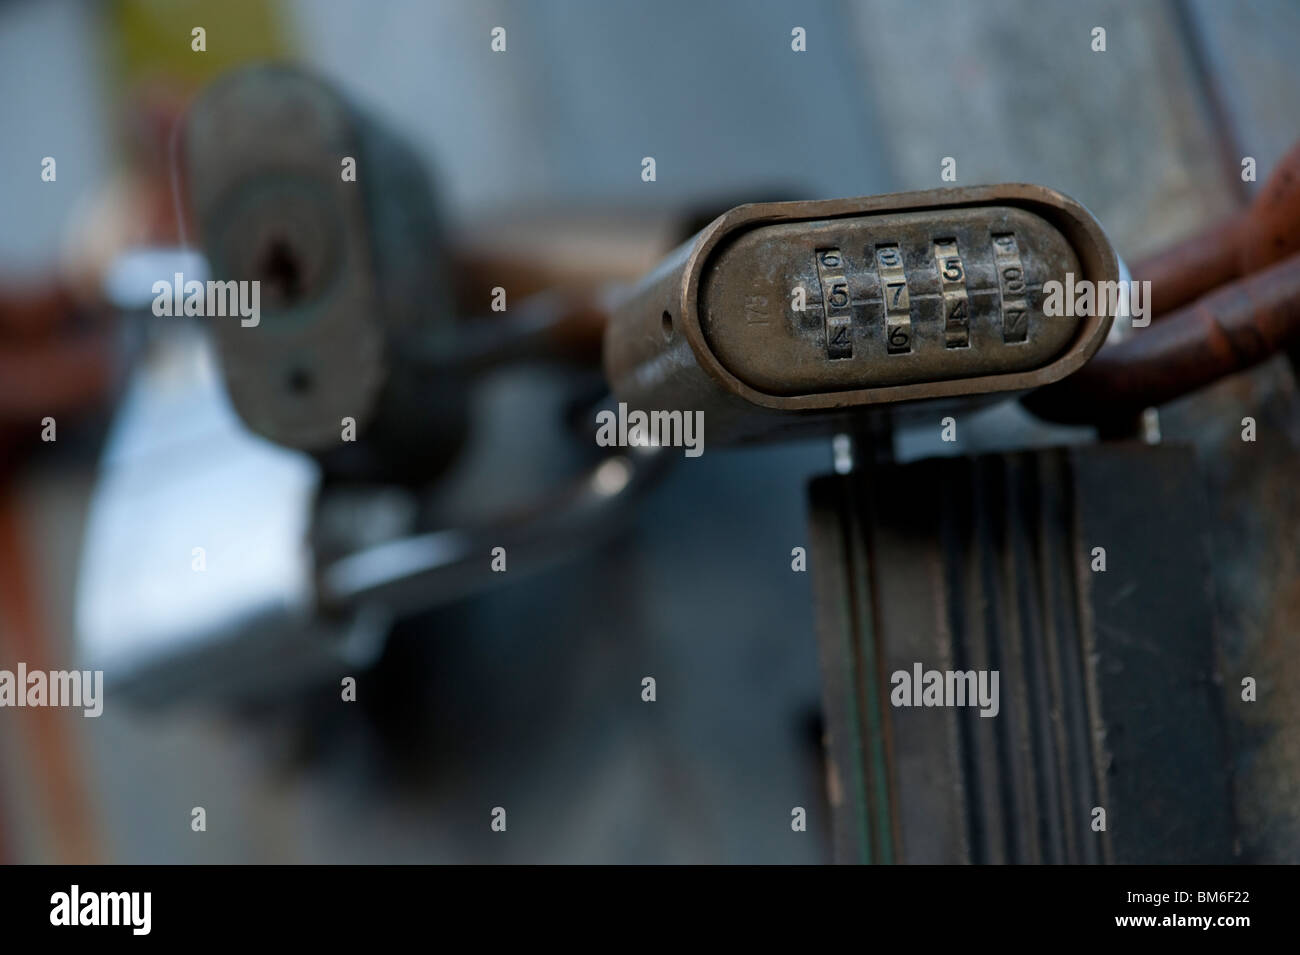 Combination lock Padlocks - Stock Image